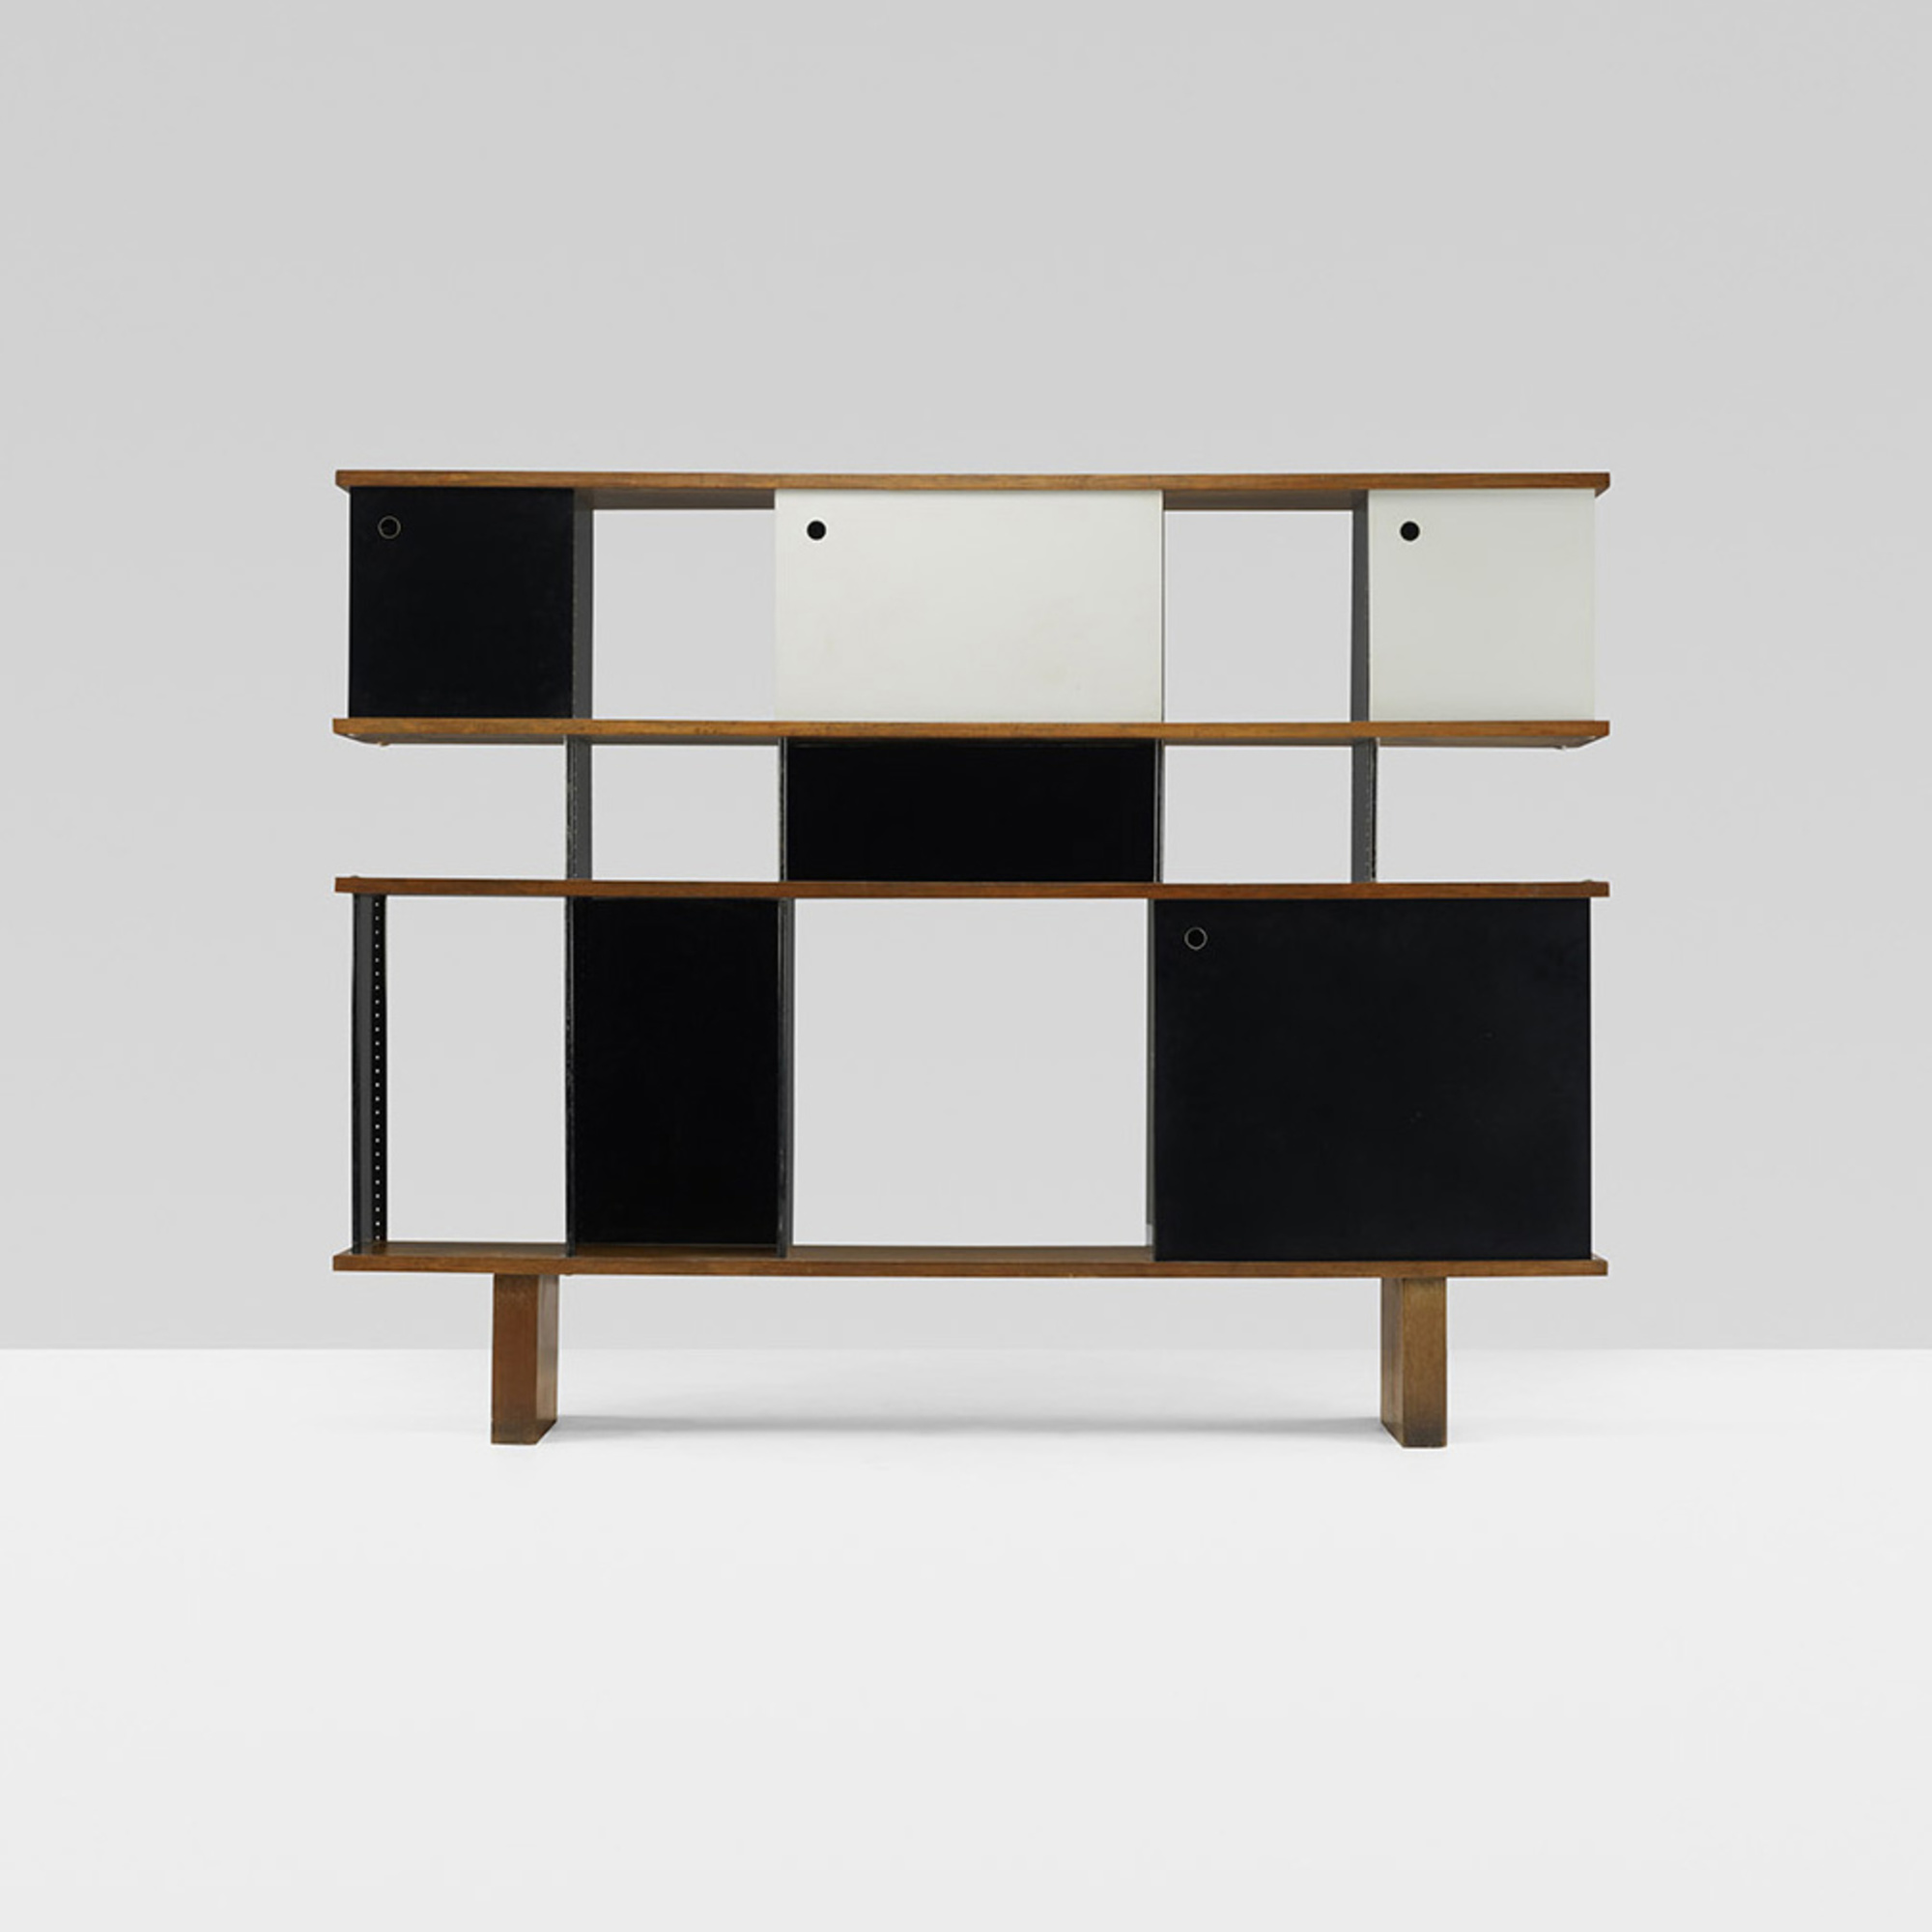 115 Charlotte Perriand Rangement Bibliothèque Important Design 7 June 2012 Auctions Wright Auctions Of Art And Design